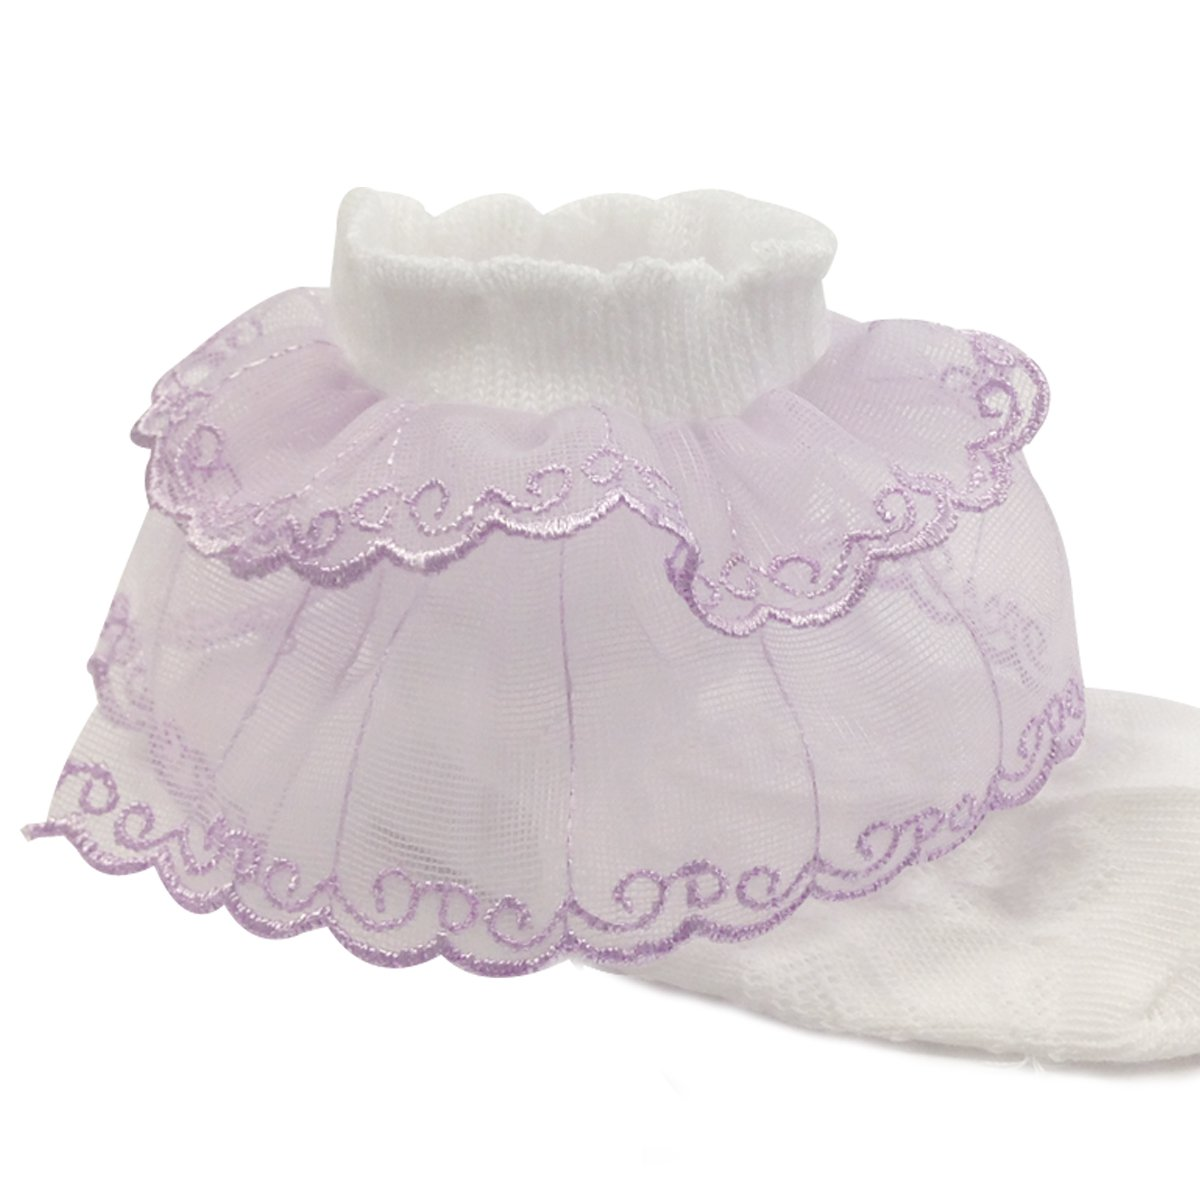 Wrapables Lil Miss Emily Double Layer Lace Ruffle Socks Set of 5